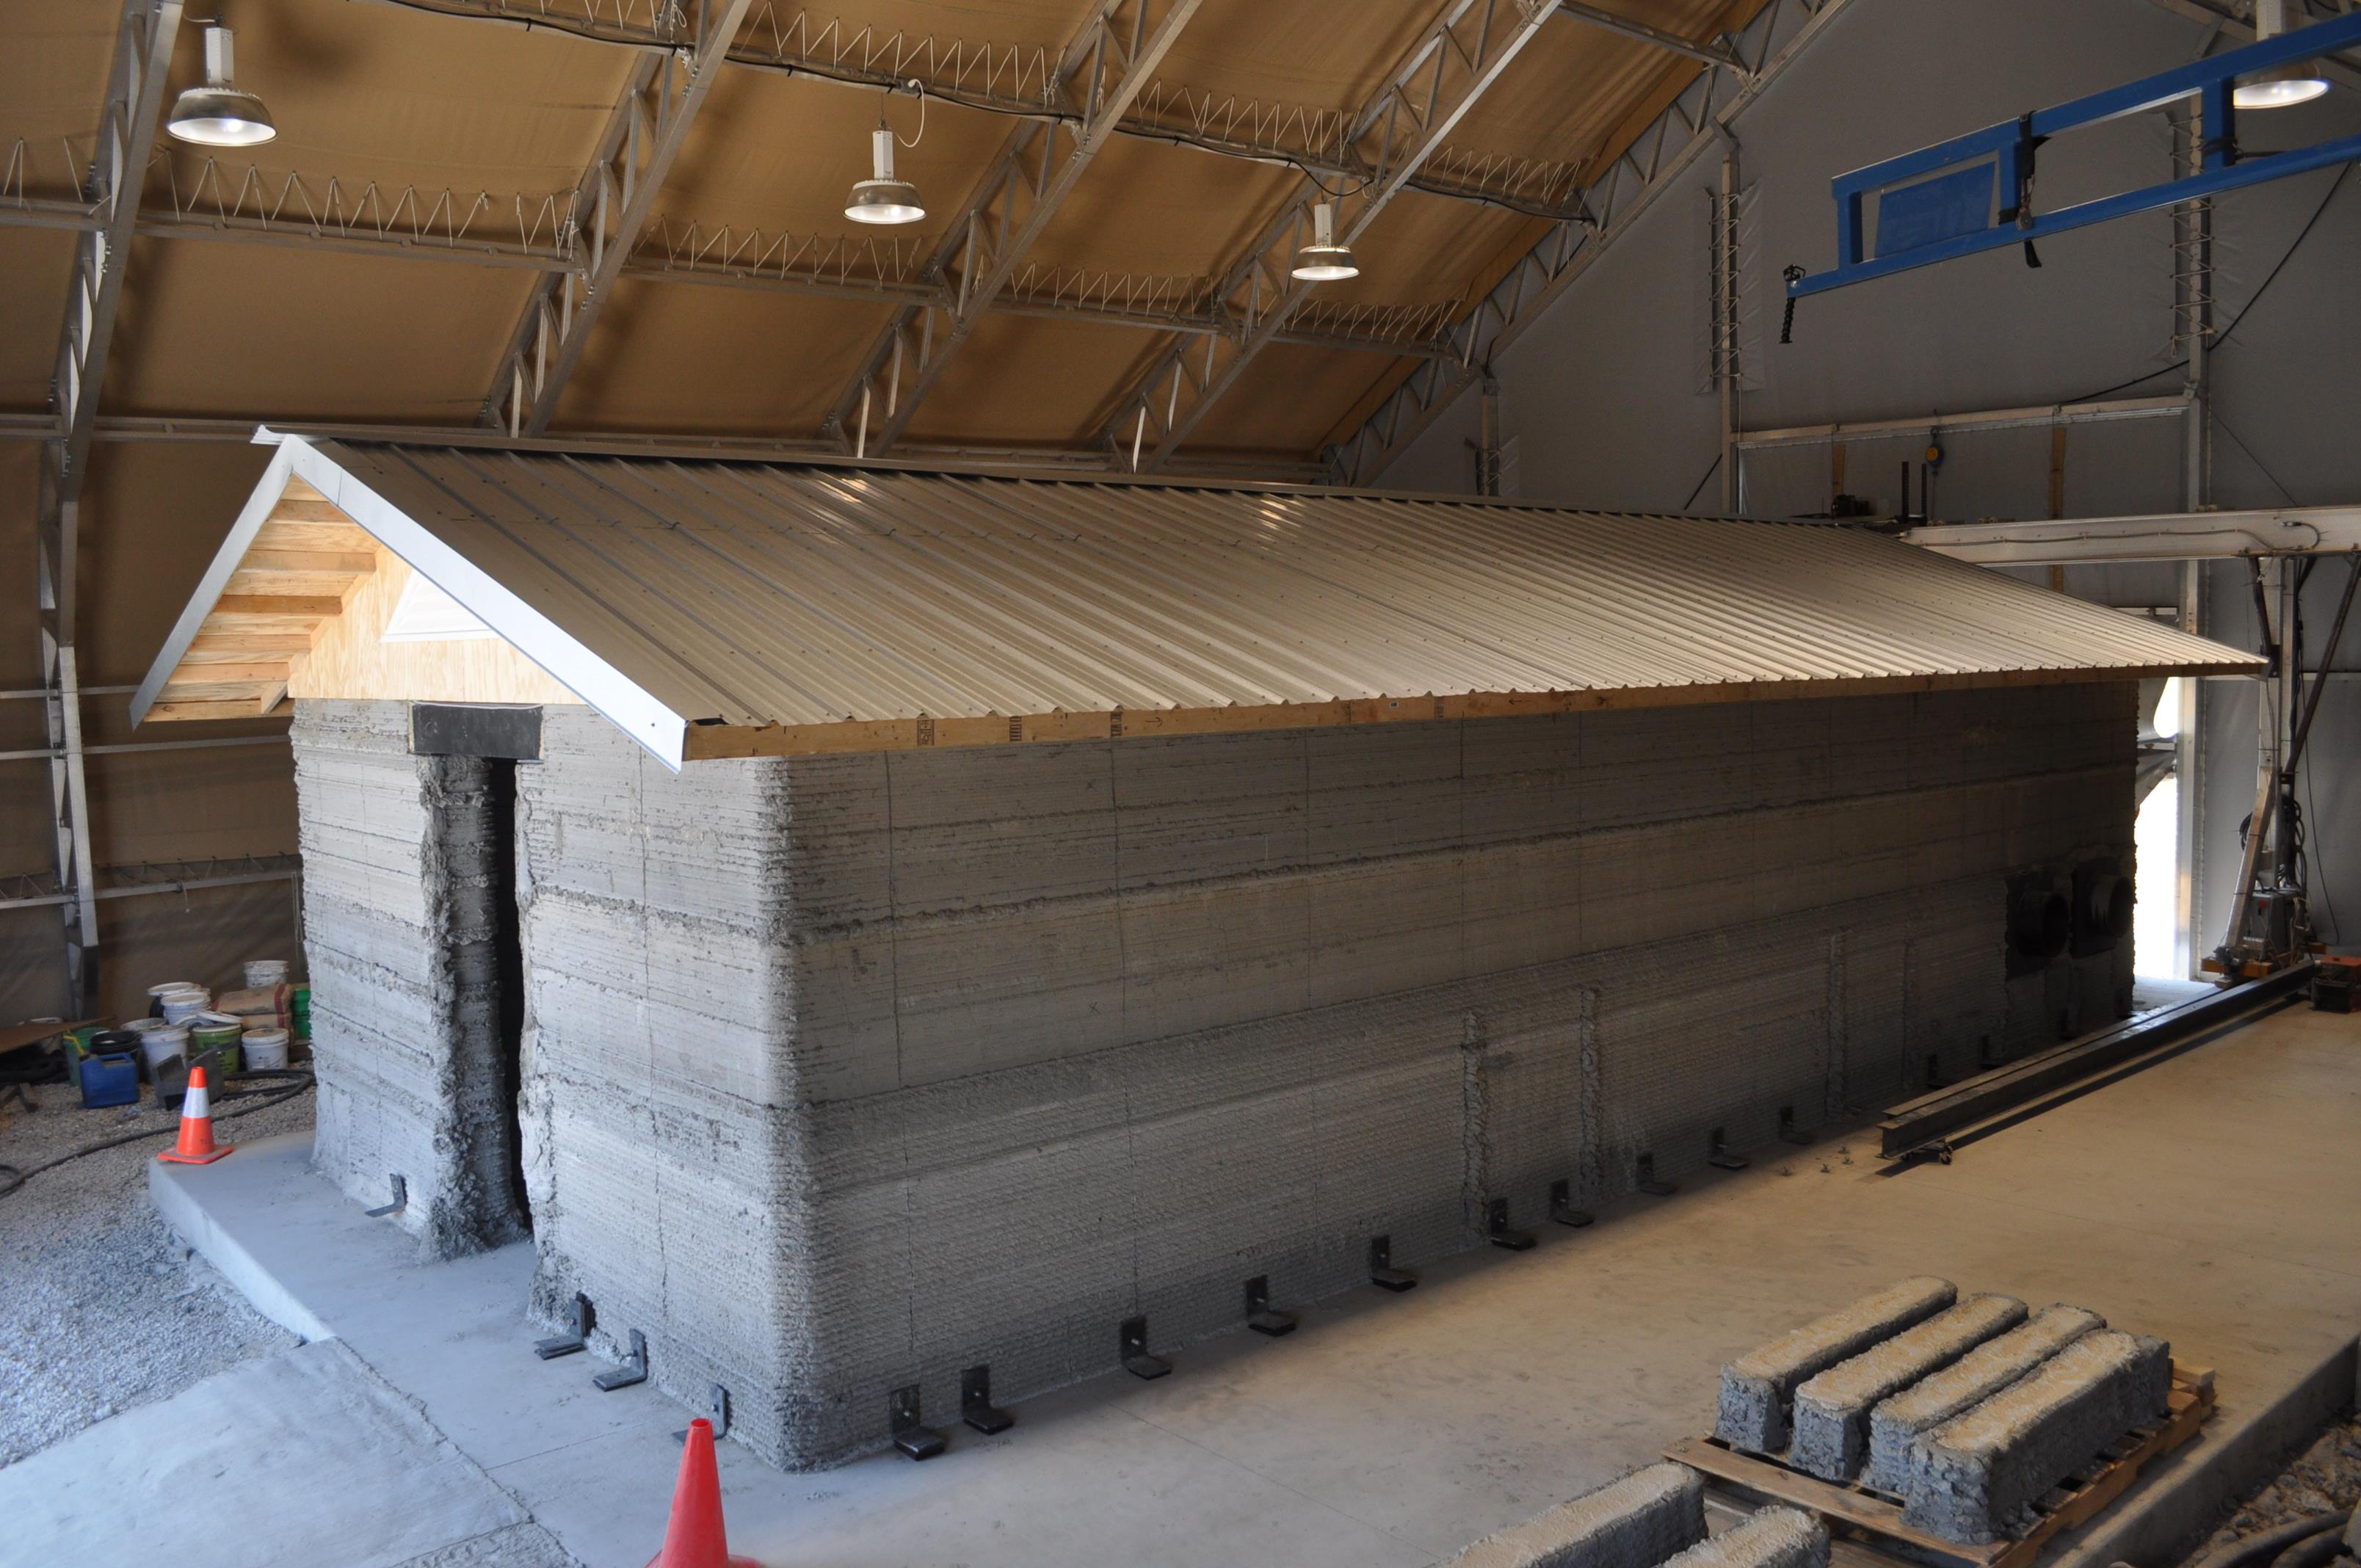 Cement Barracks Hut Printed At The Construction Engineering Research Laboratory In Champaign Illinois